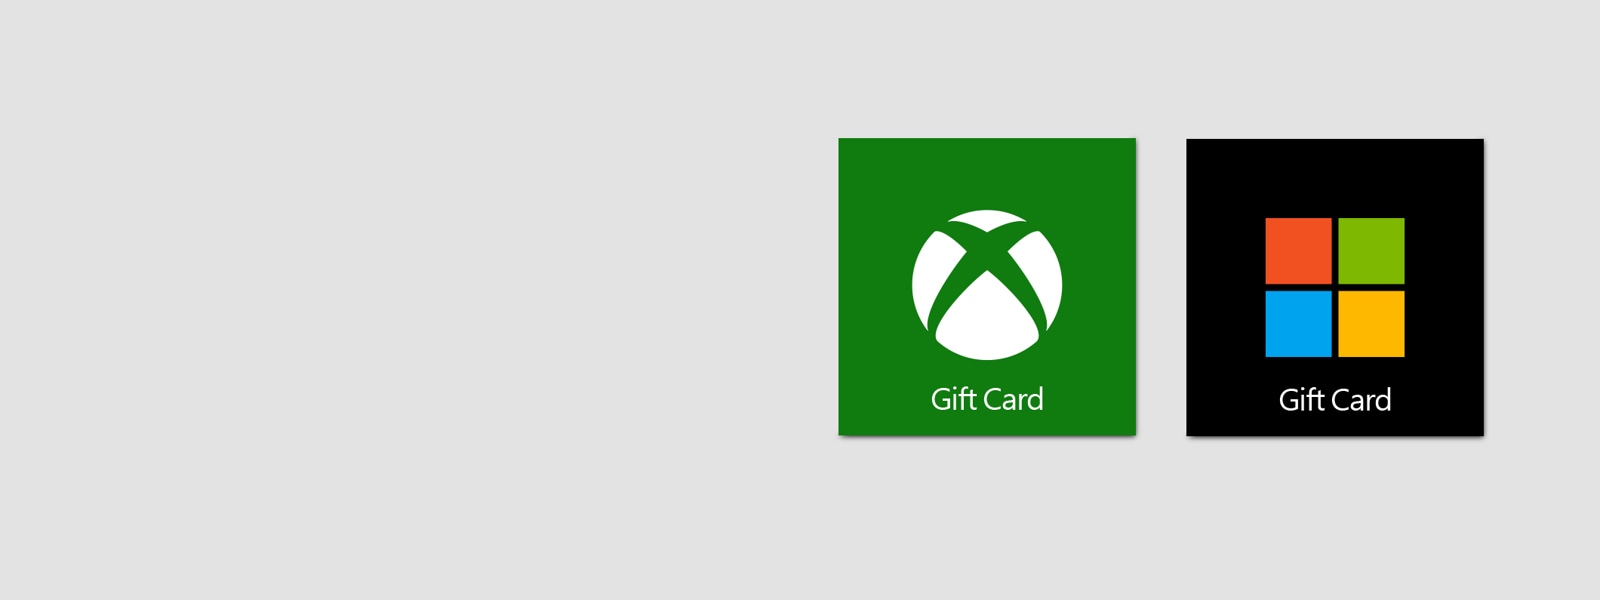 hero gift card_en_gb